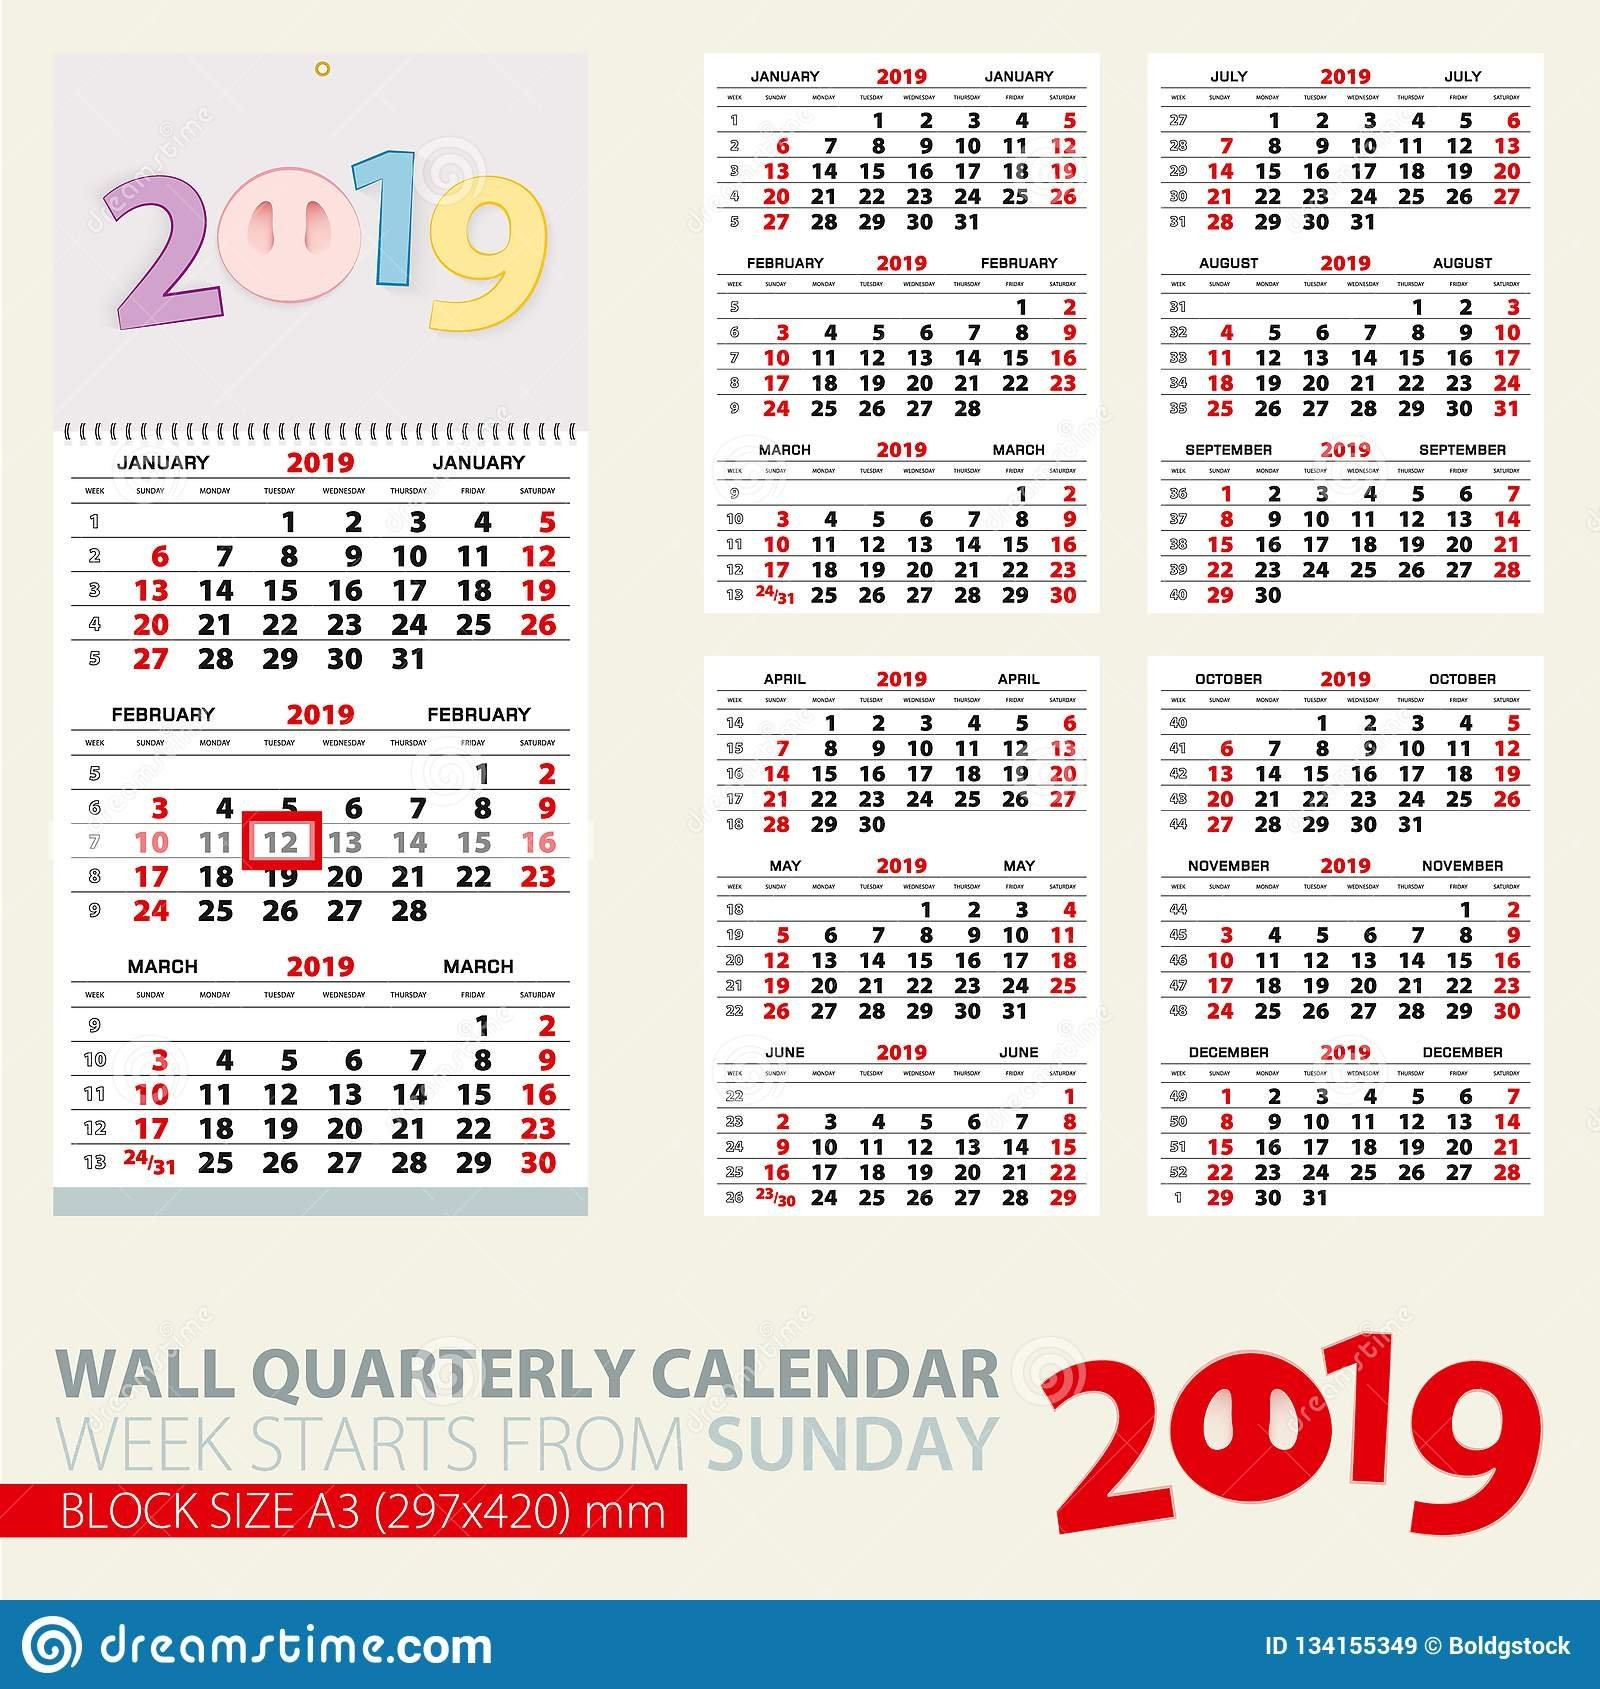 Print Template Of Wall Quarterly Calendar For 2019 Year. Year Of The Calendar Week 41 2019